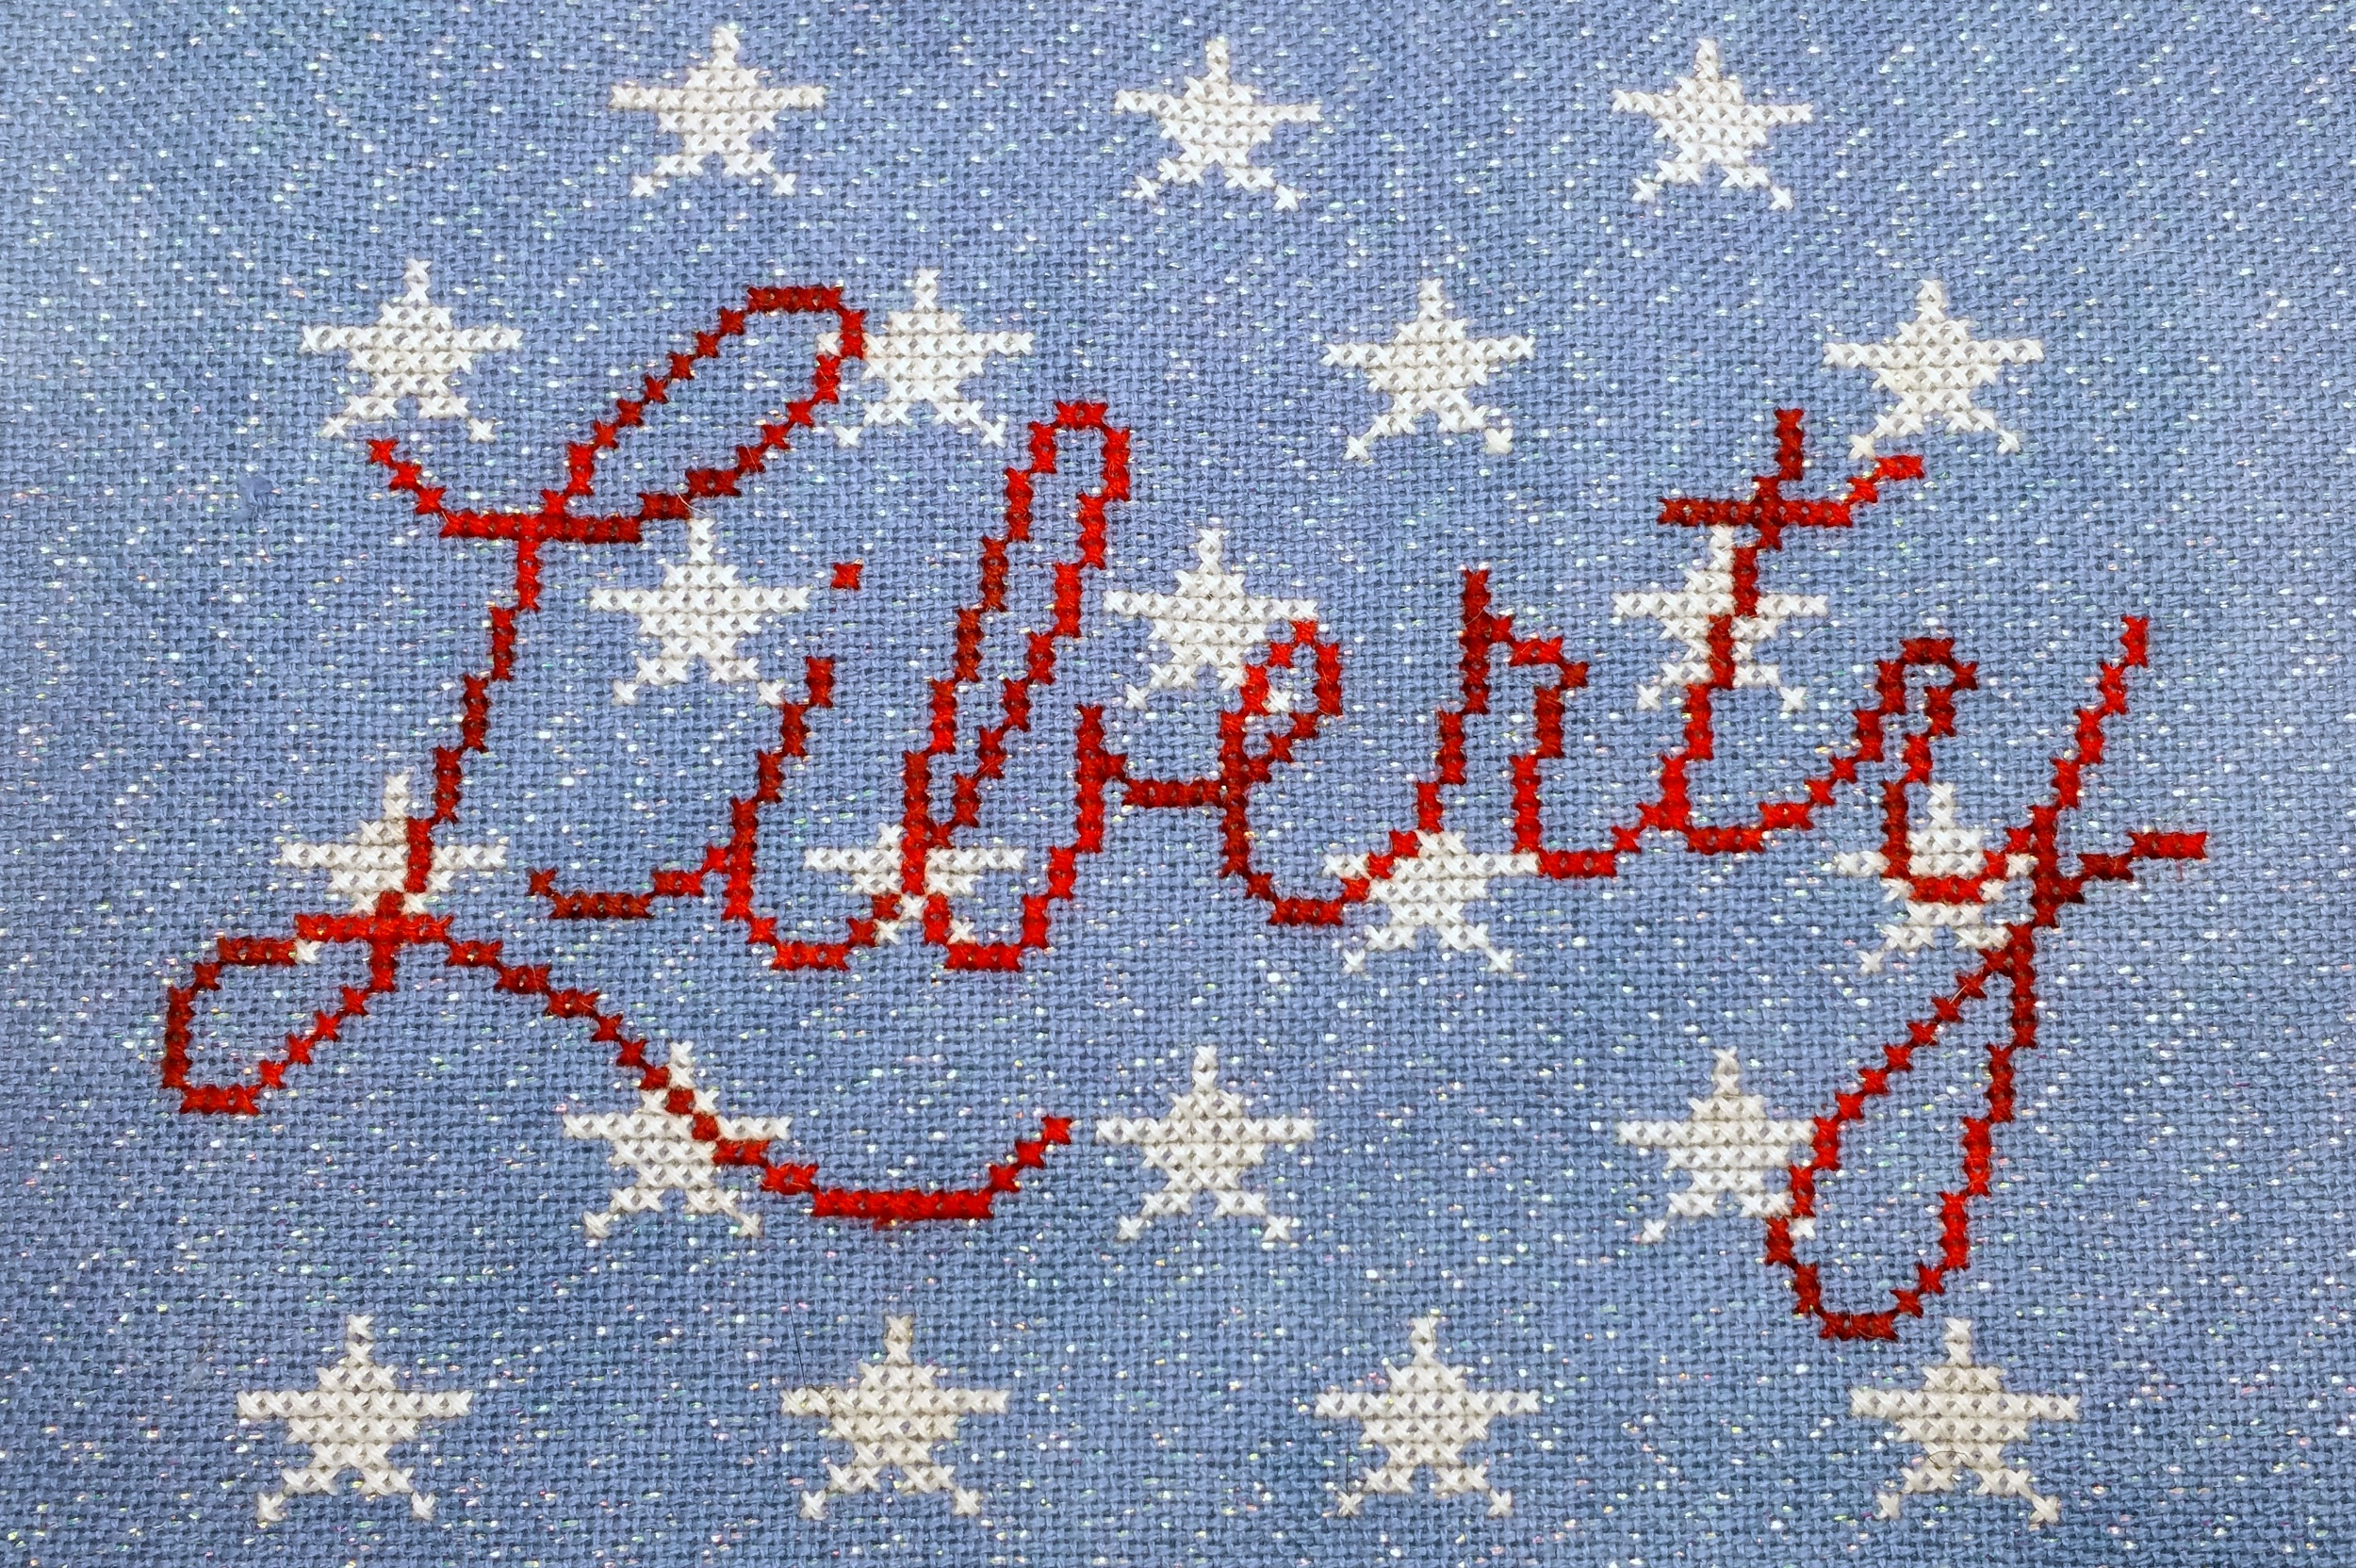 Liberty, stitched by our model stitcher Laurie